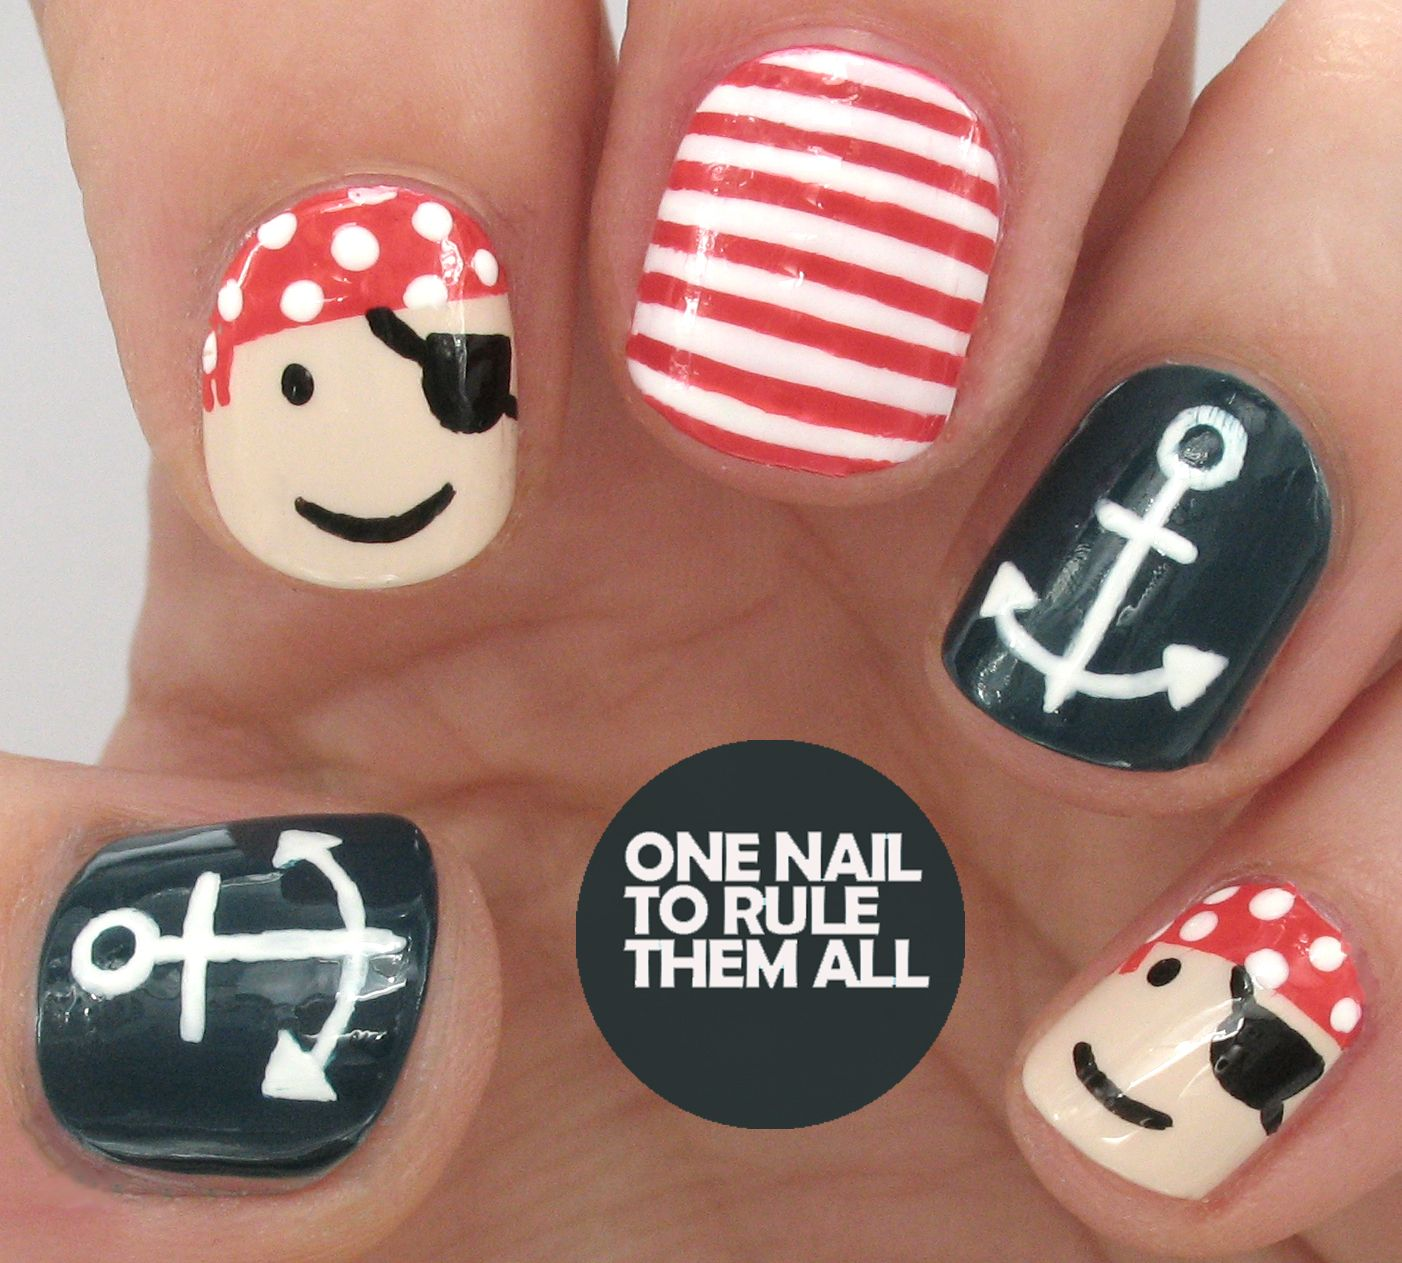 Excellent Cure For Fungus Nails Tall Color Me Nail Polish Shaped Fourth July Nail Art Design Acetone Nail Polish Remover Pregnancy Youthful Metallic Nail Polish Sally Hansen GreenSkin Tag Removal With Nail Polish Tutorial Tuesday: Pirate Nautical Nail Art (One Nail To Rule Them ..